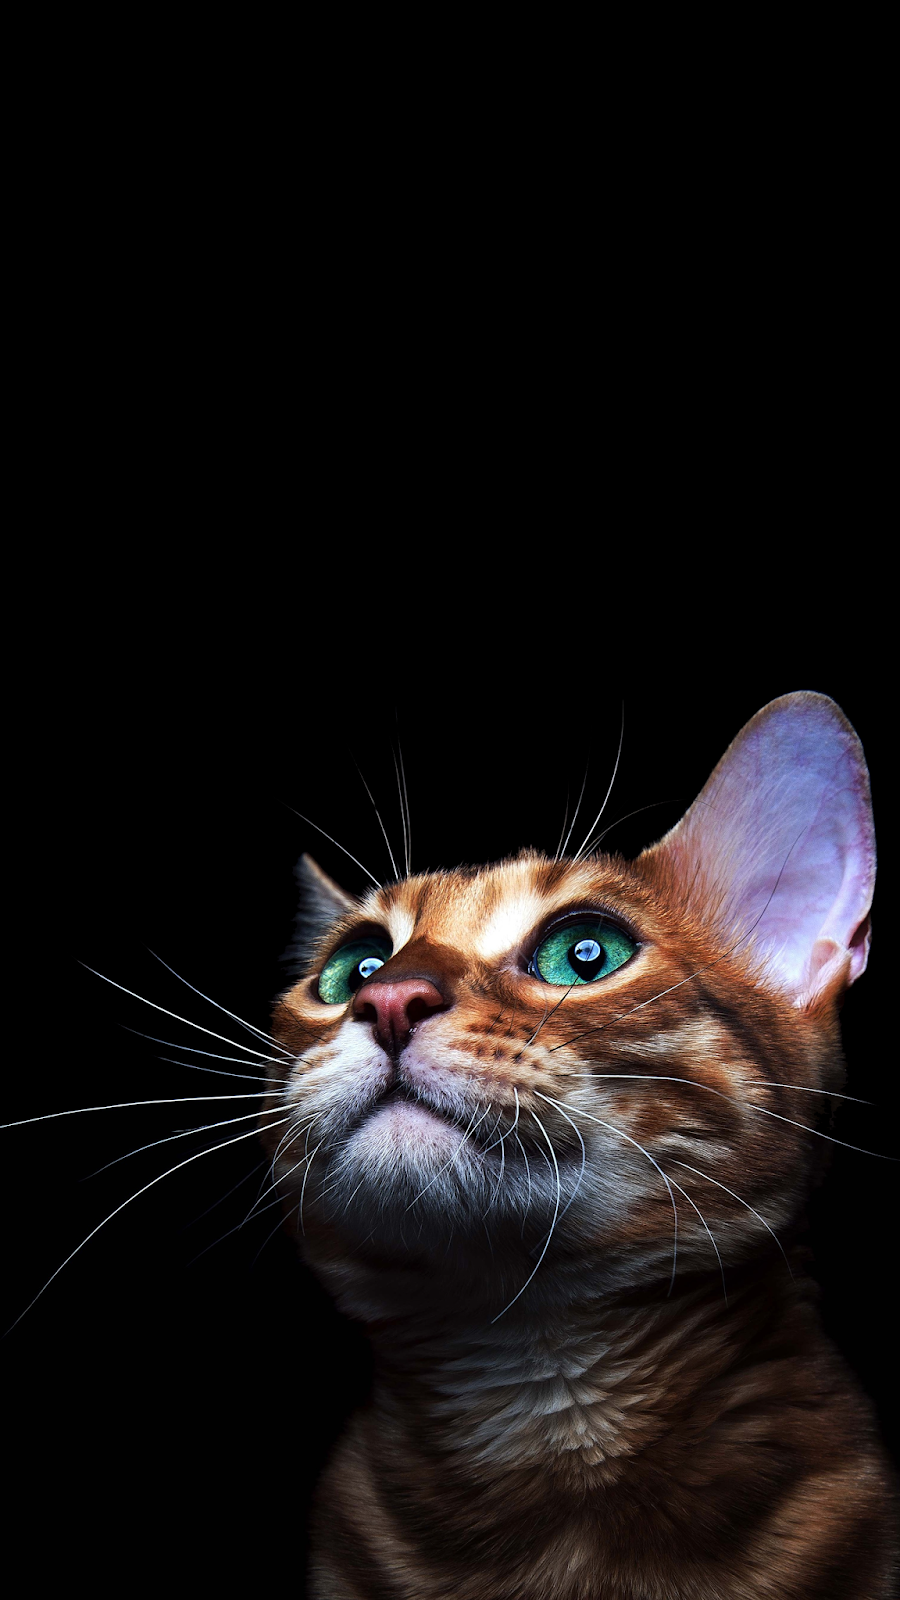 4k Cat Amoled Phone Wallpaper In 2020 Cute Cat Wallpaper Cat Wallpaper Cat Aesthetic